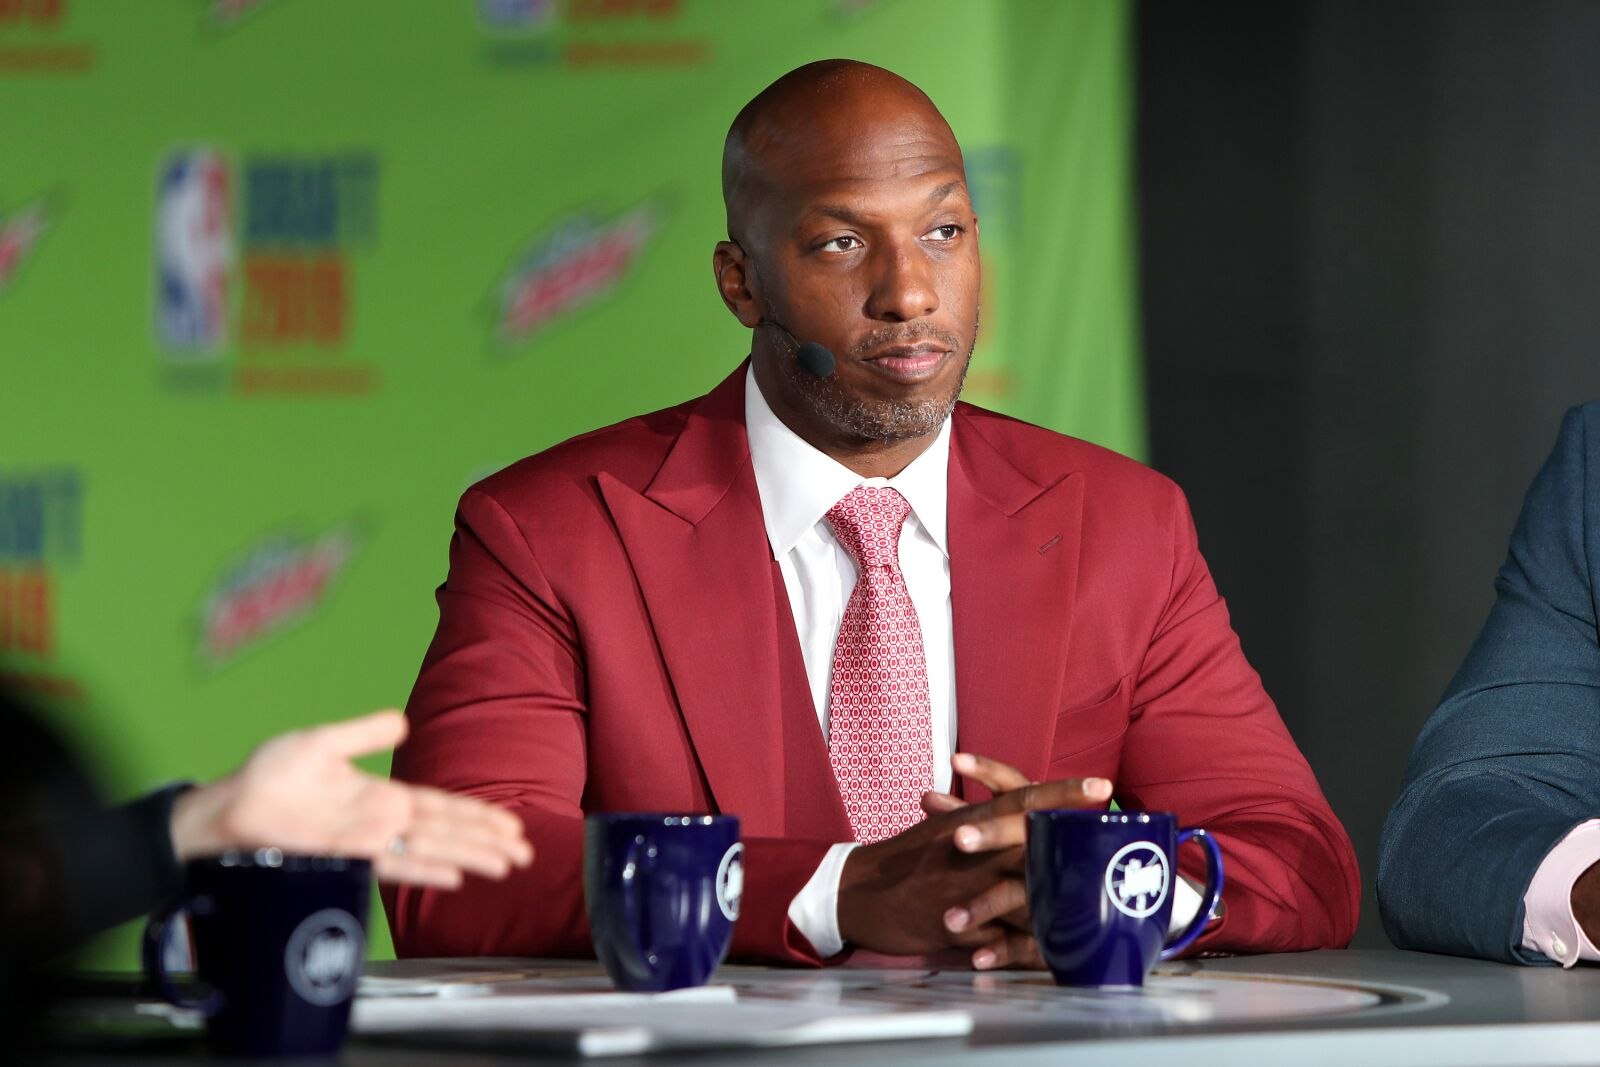 LA Clippers reportedly hire Chauncey Billups for Color Analyst position